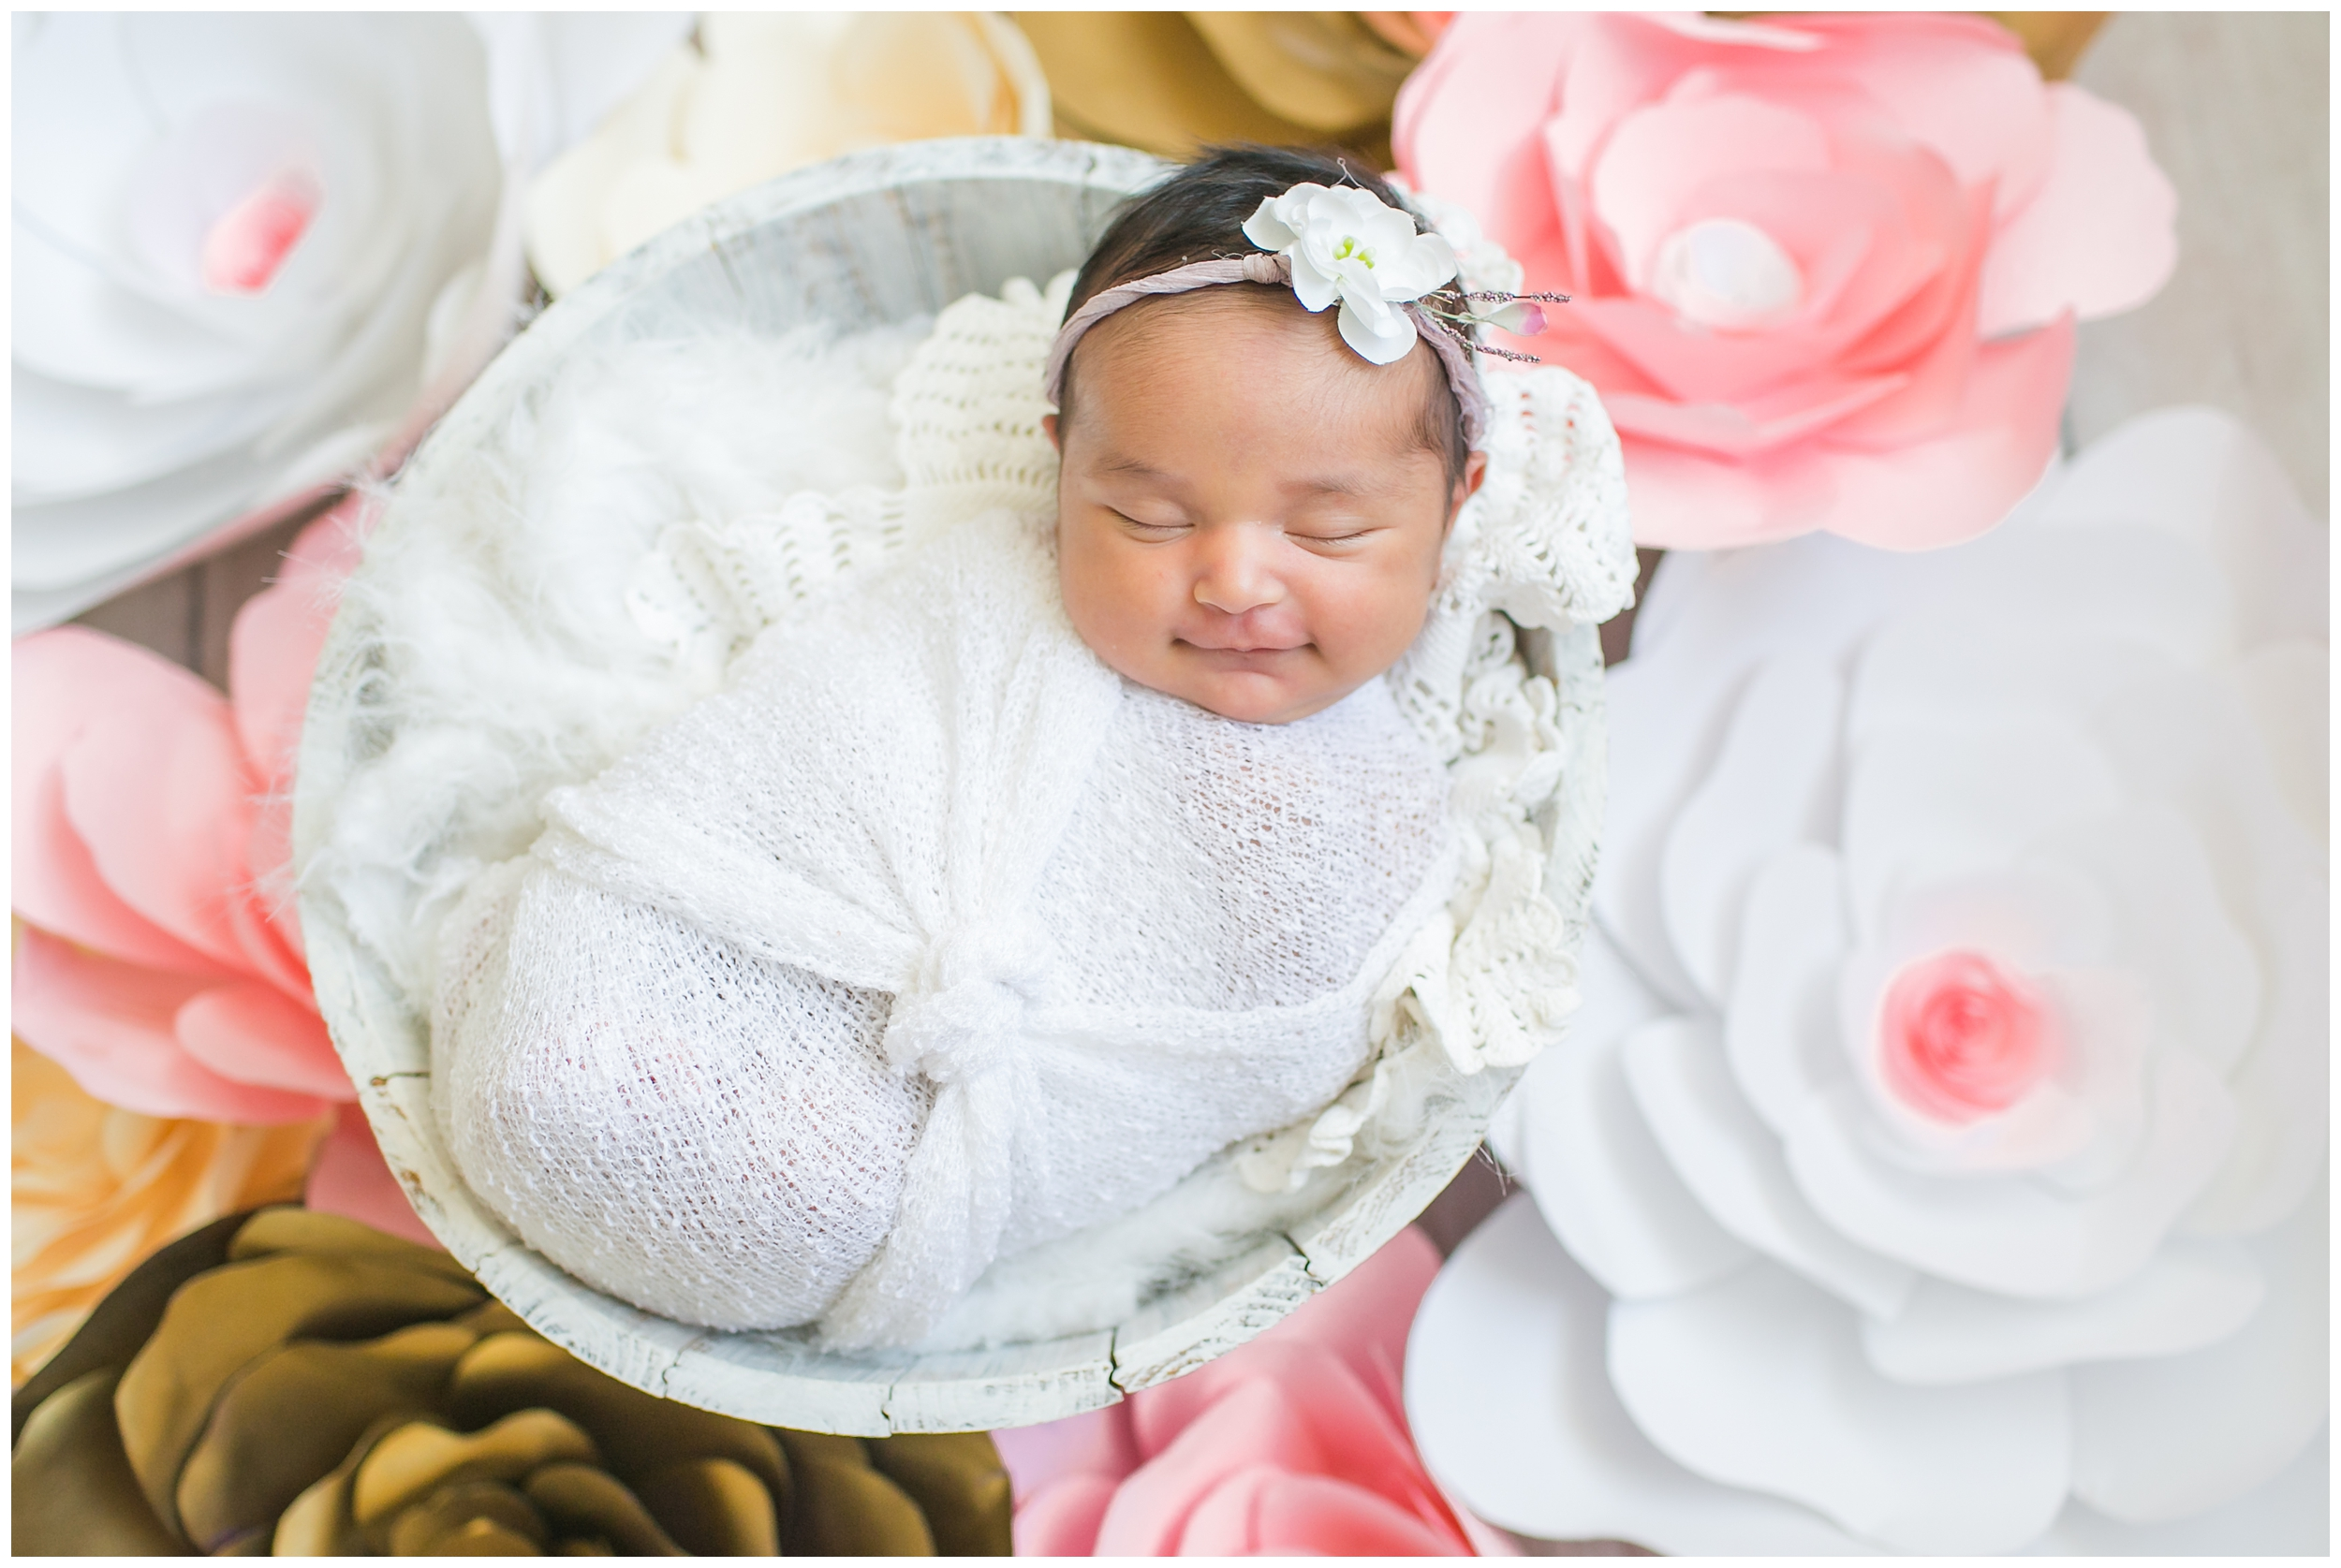 baby-collection-carrie-vines-redlands-portrait-photograhy-043.jpg